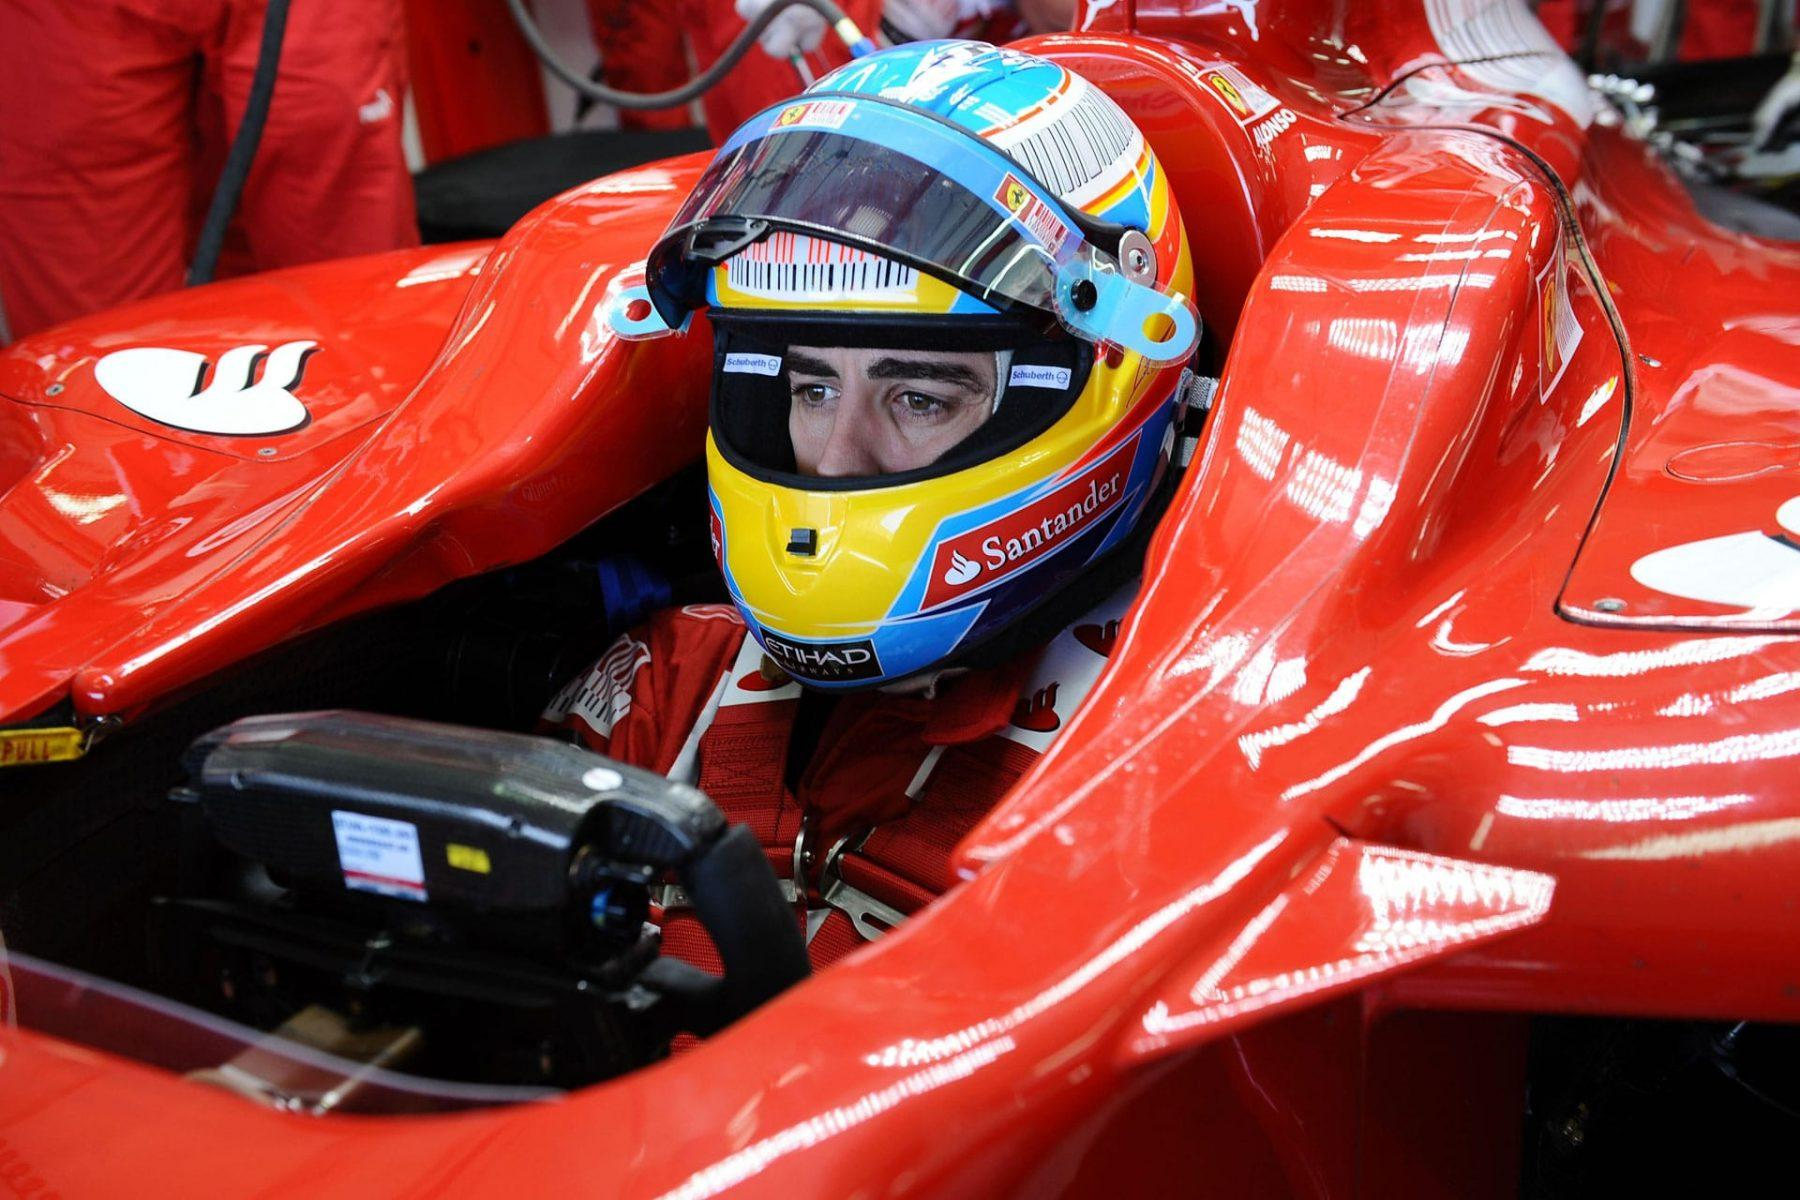 Fernando Alonso HD Wallpapers | 7wallpapers.net